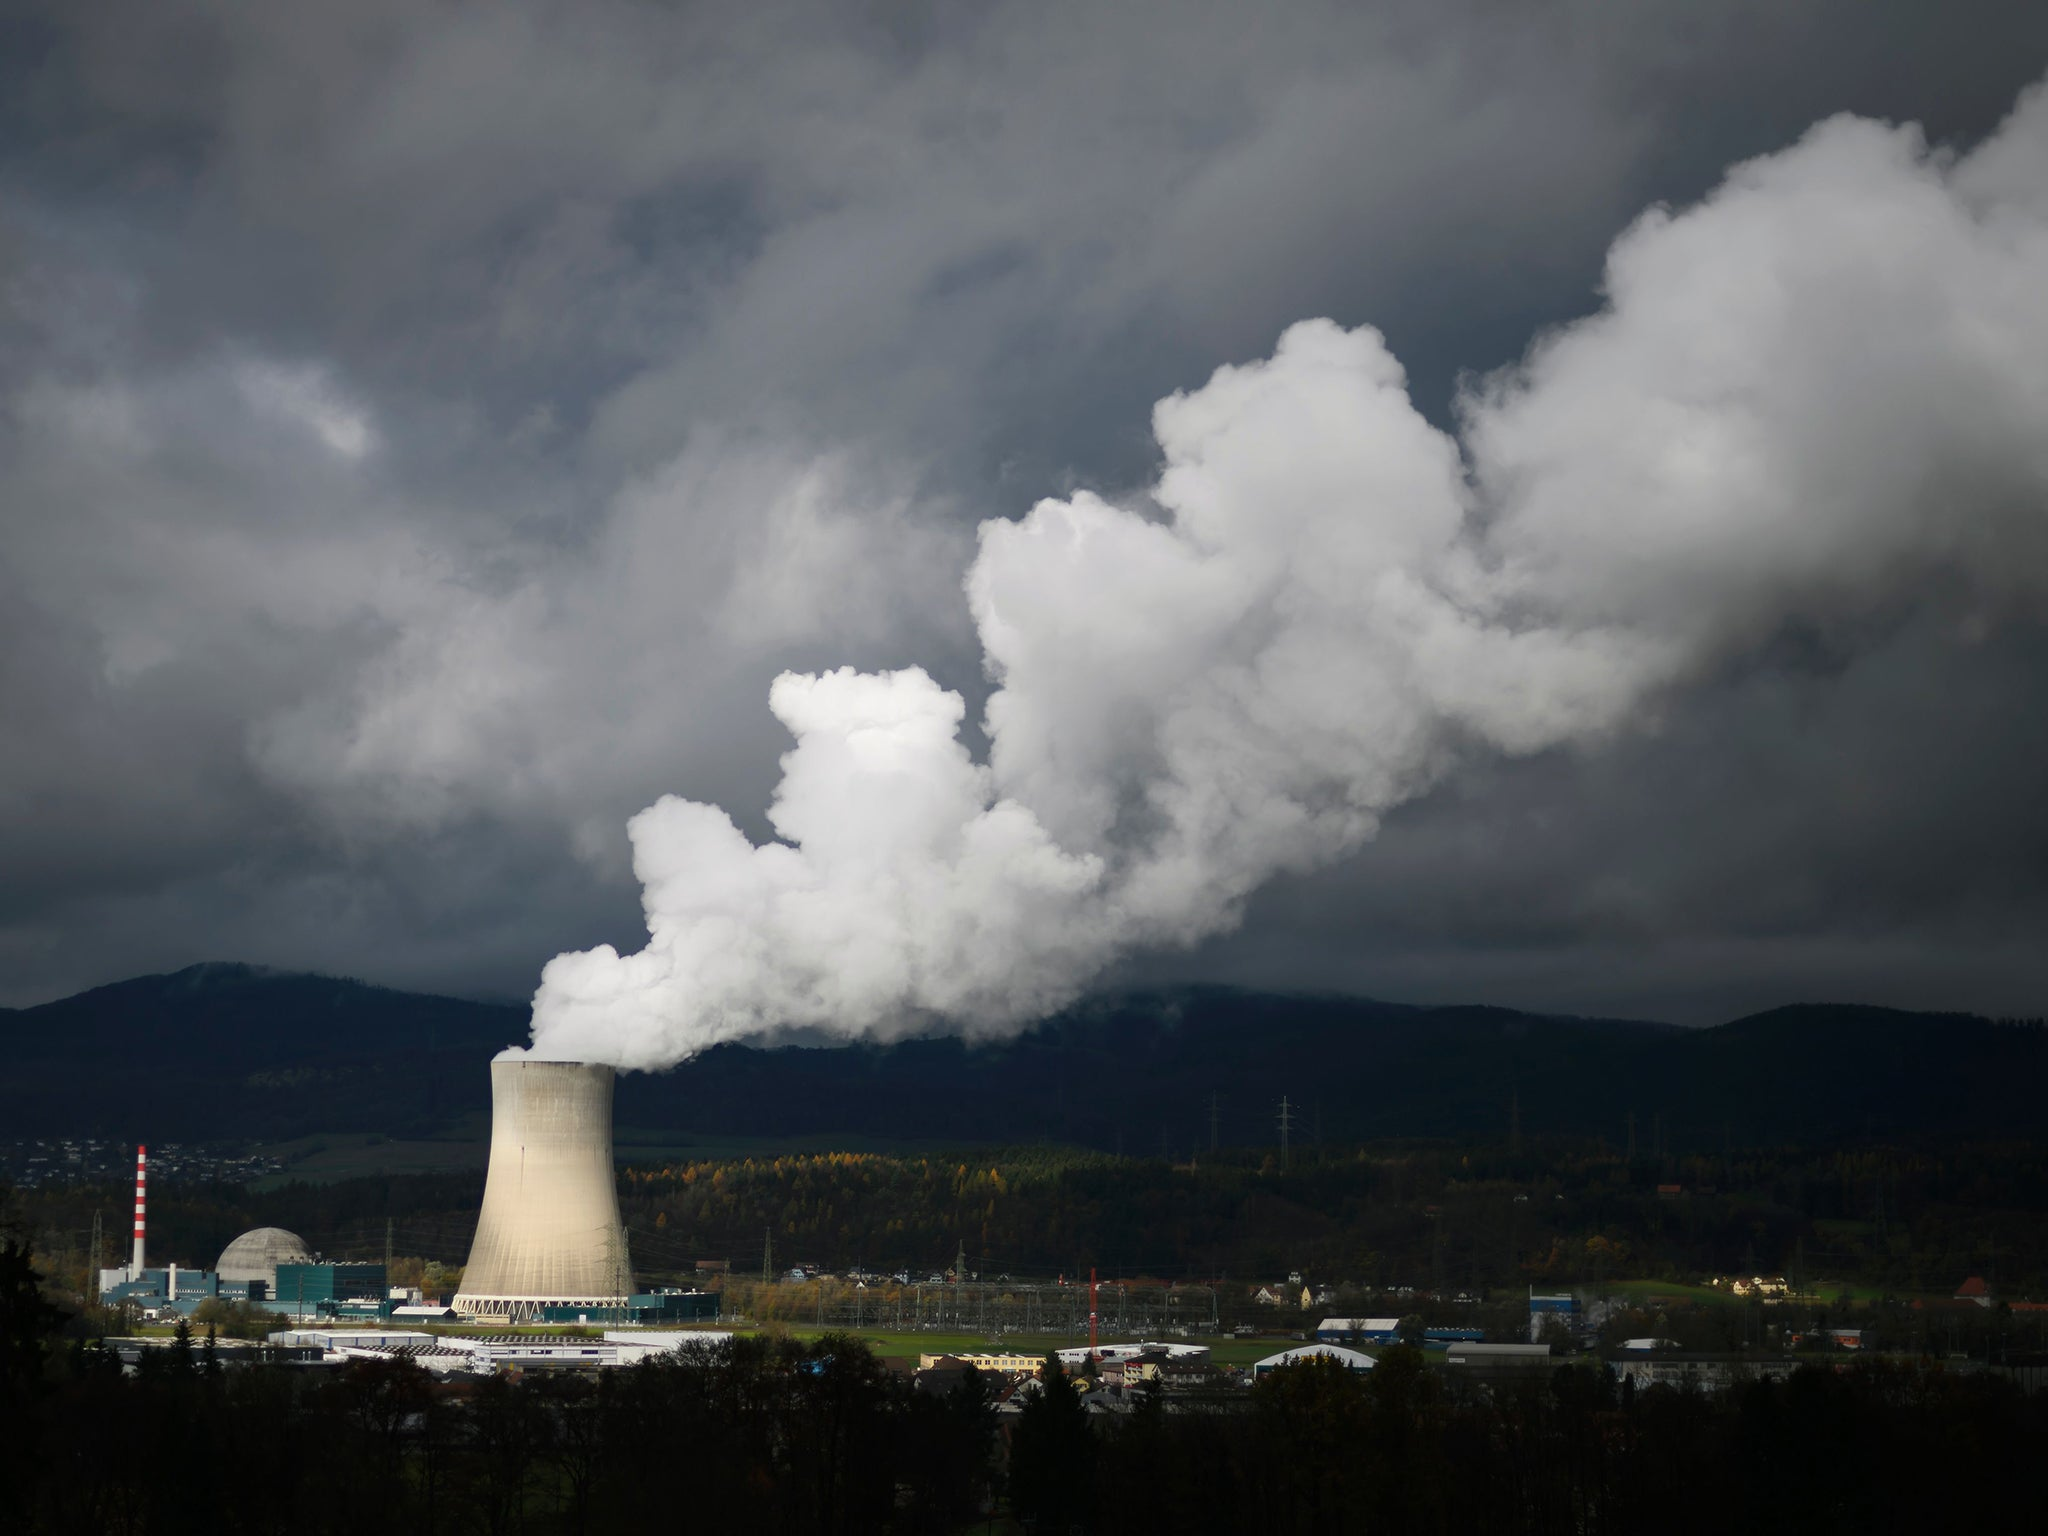 switzerland votes to phase out nuclear energy and switch